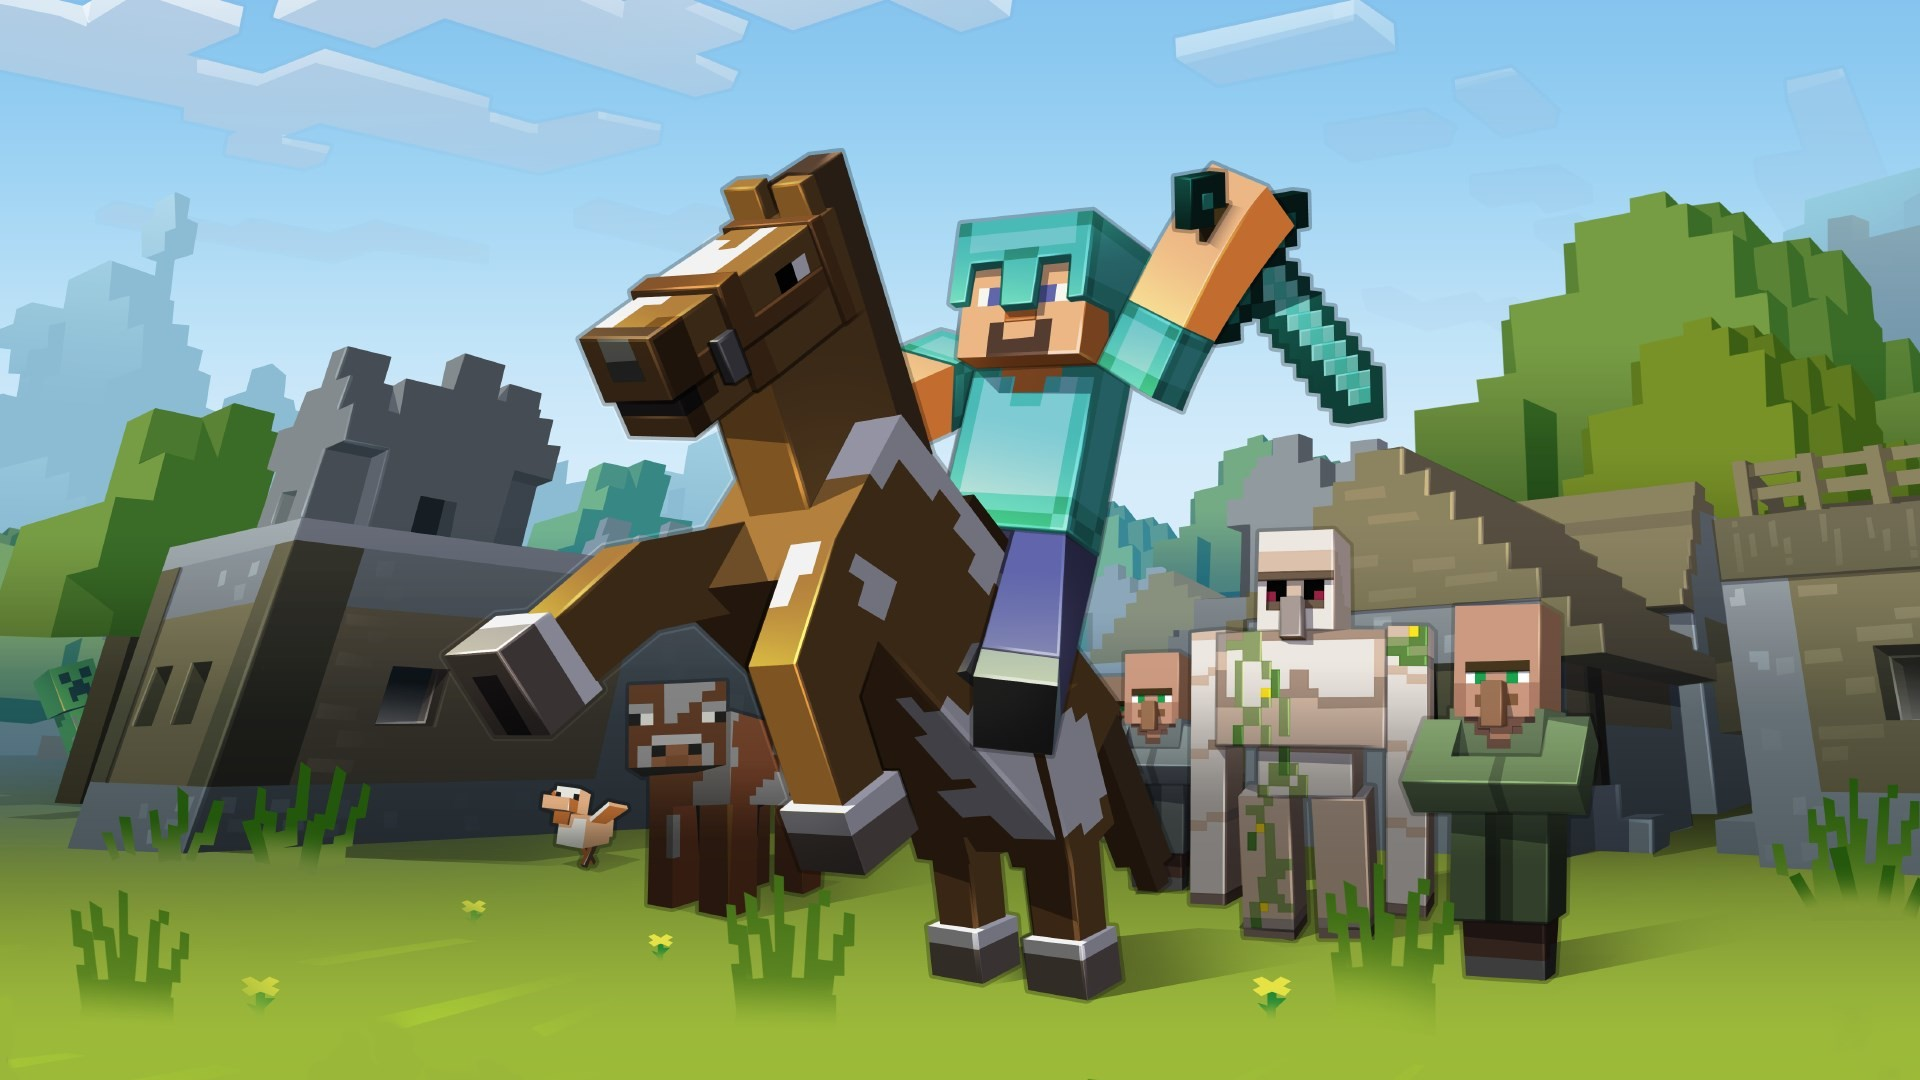 Minecraft Wallpaper For Computer 75 Images